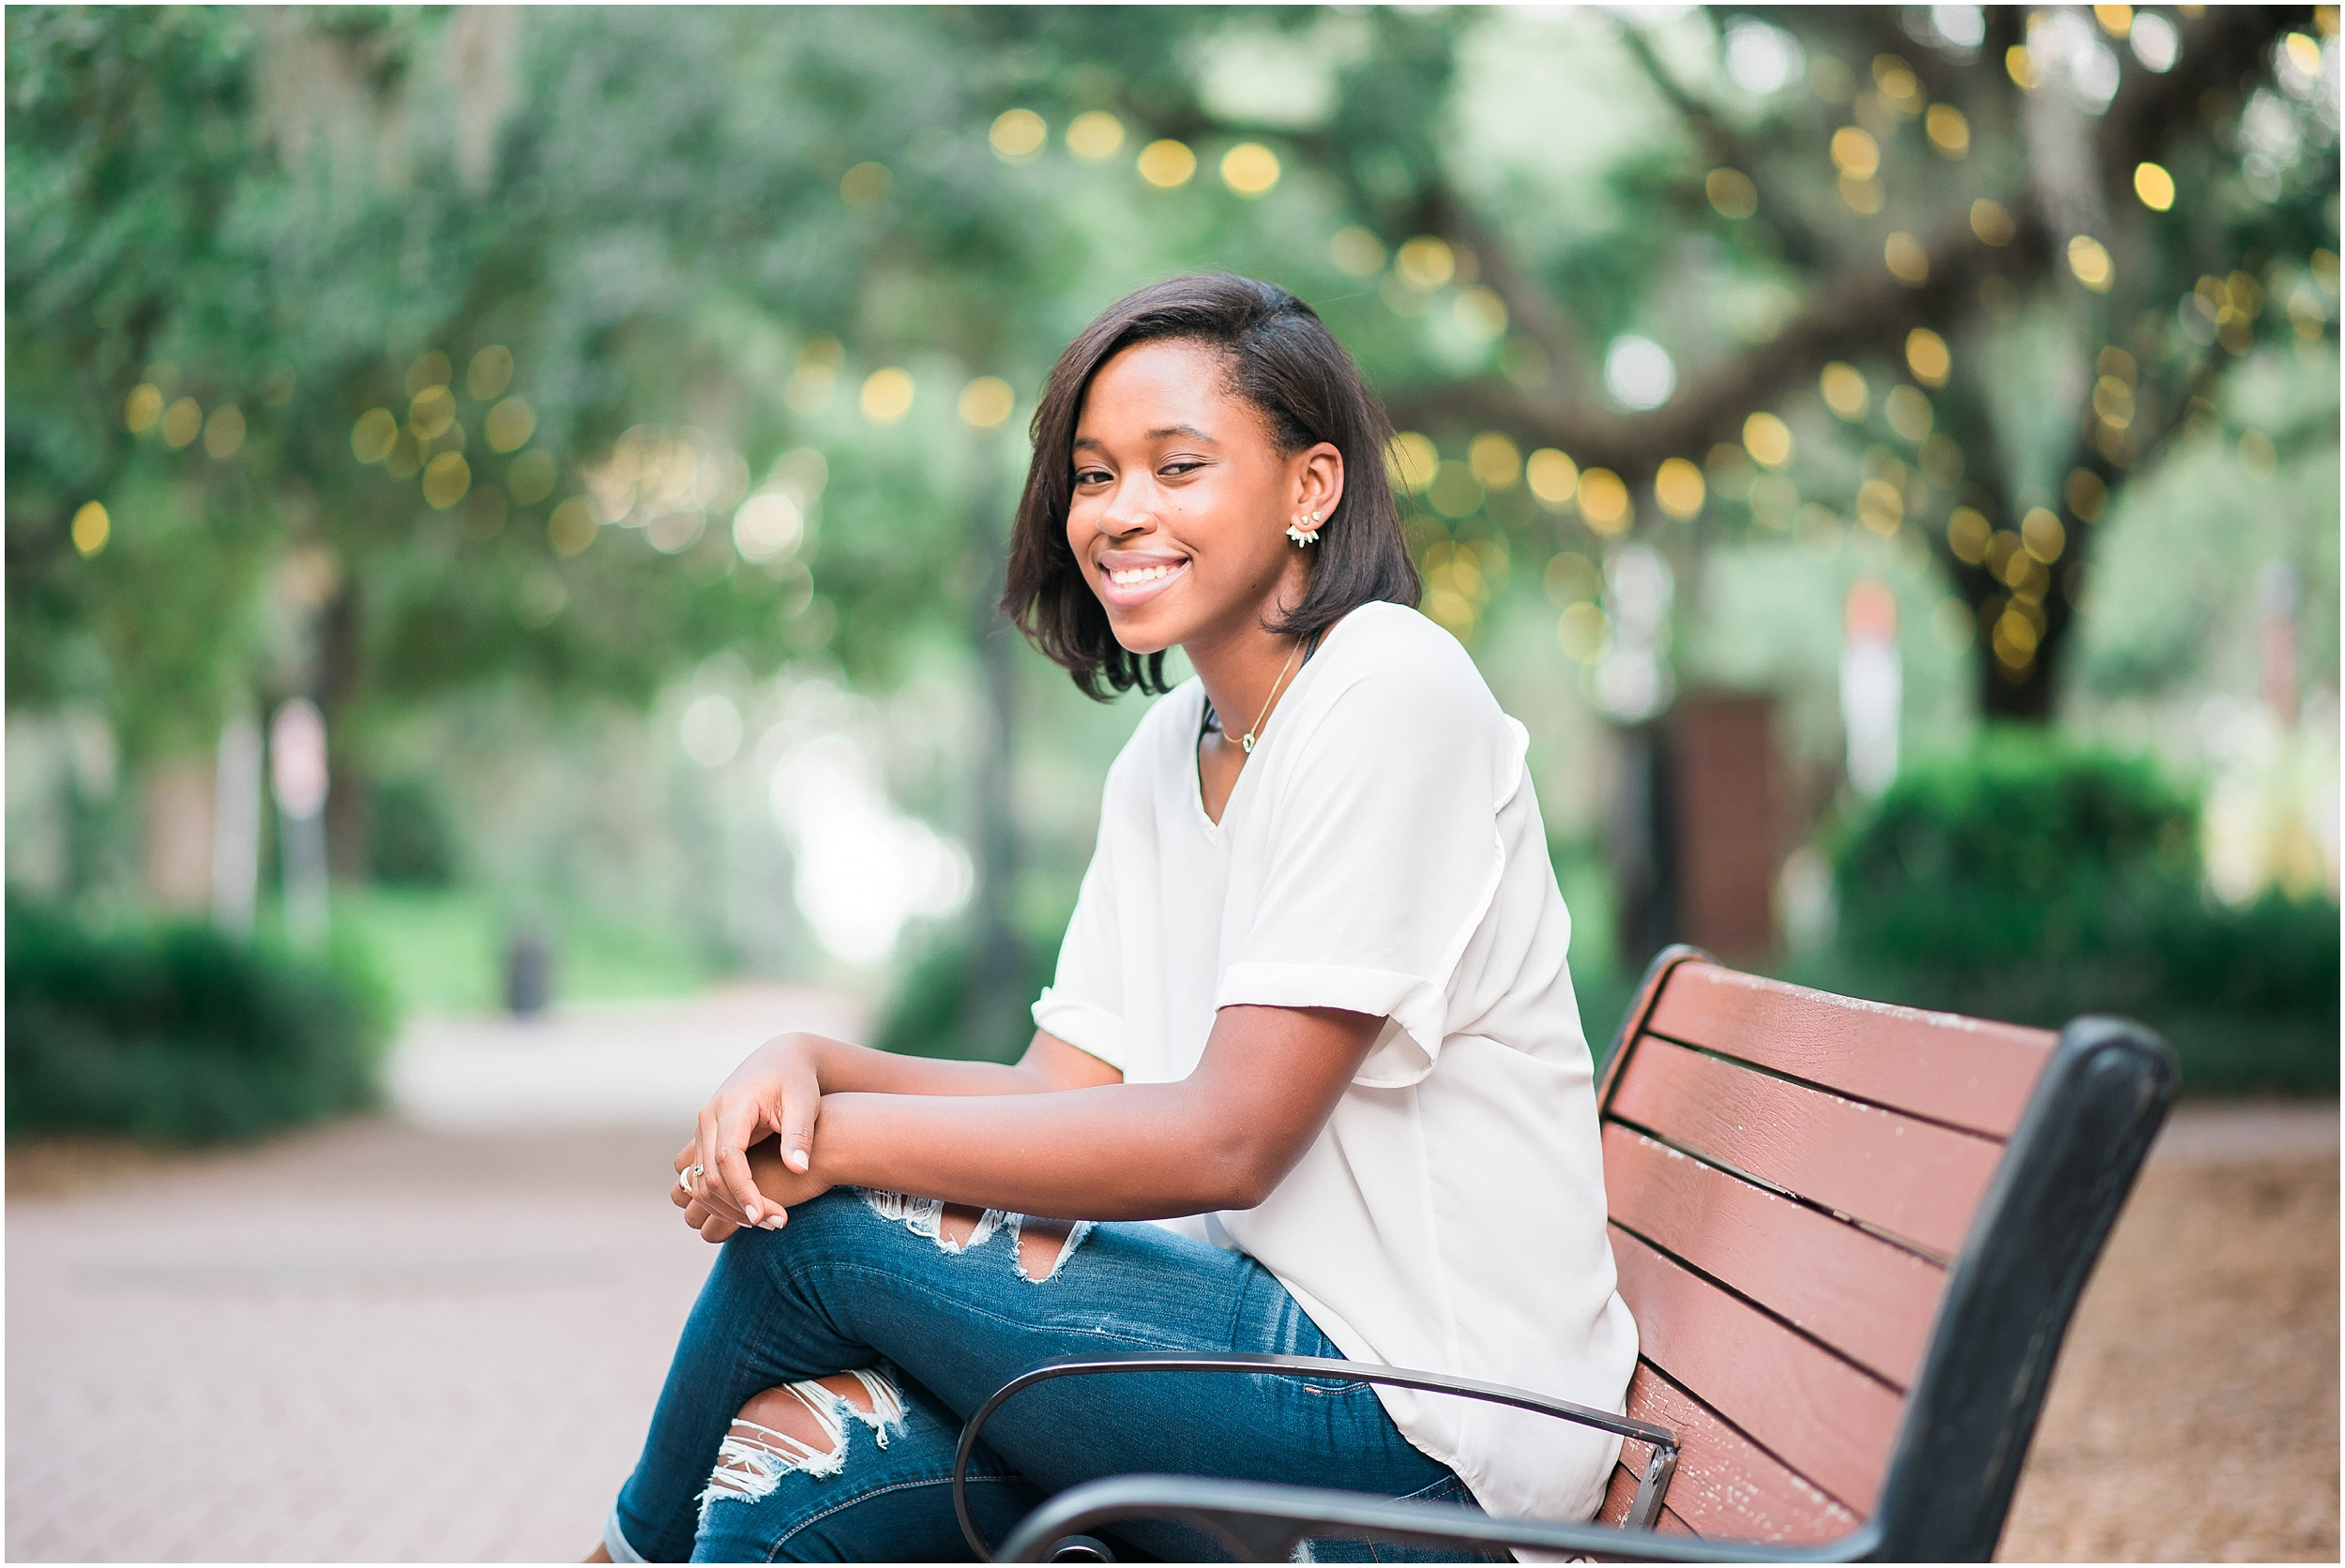 Tallahassee Florida Senior Photographer, Tenejah Senior Session at Maclay Gardens, Tallahassee Florida_0008.jpg